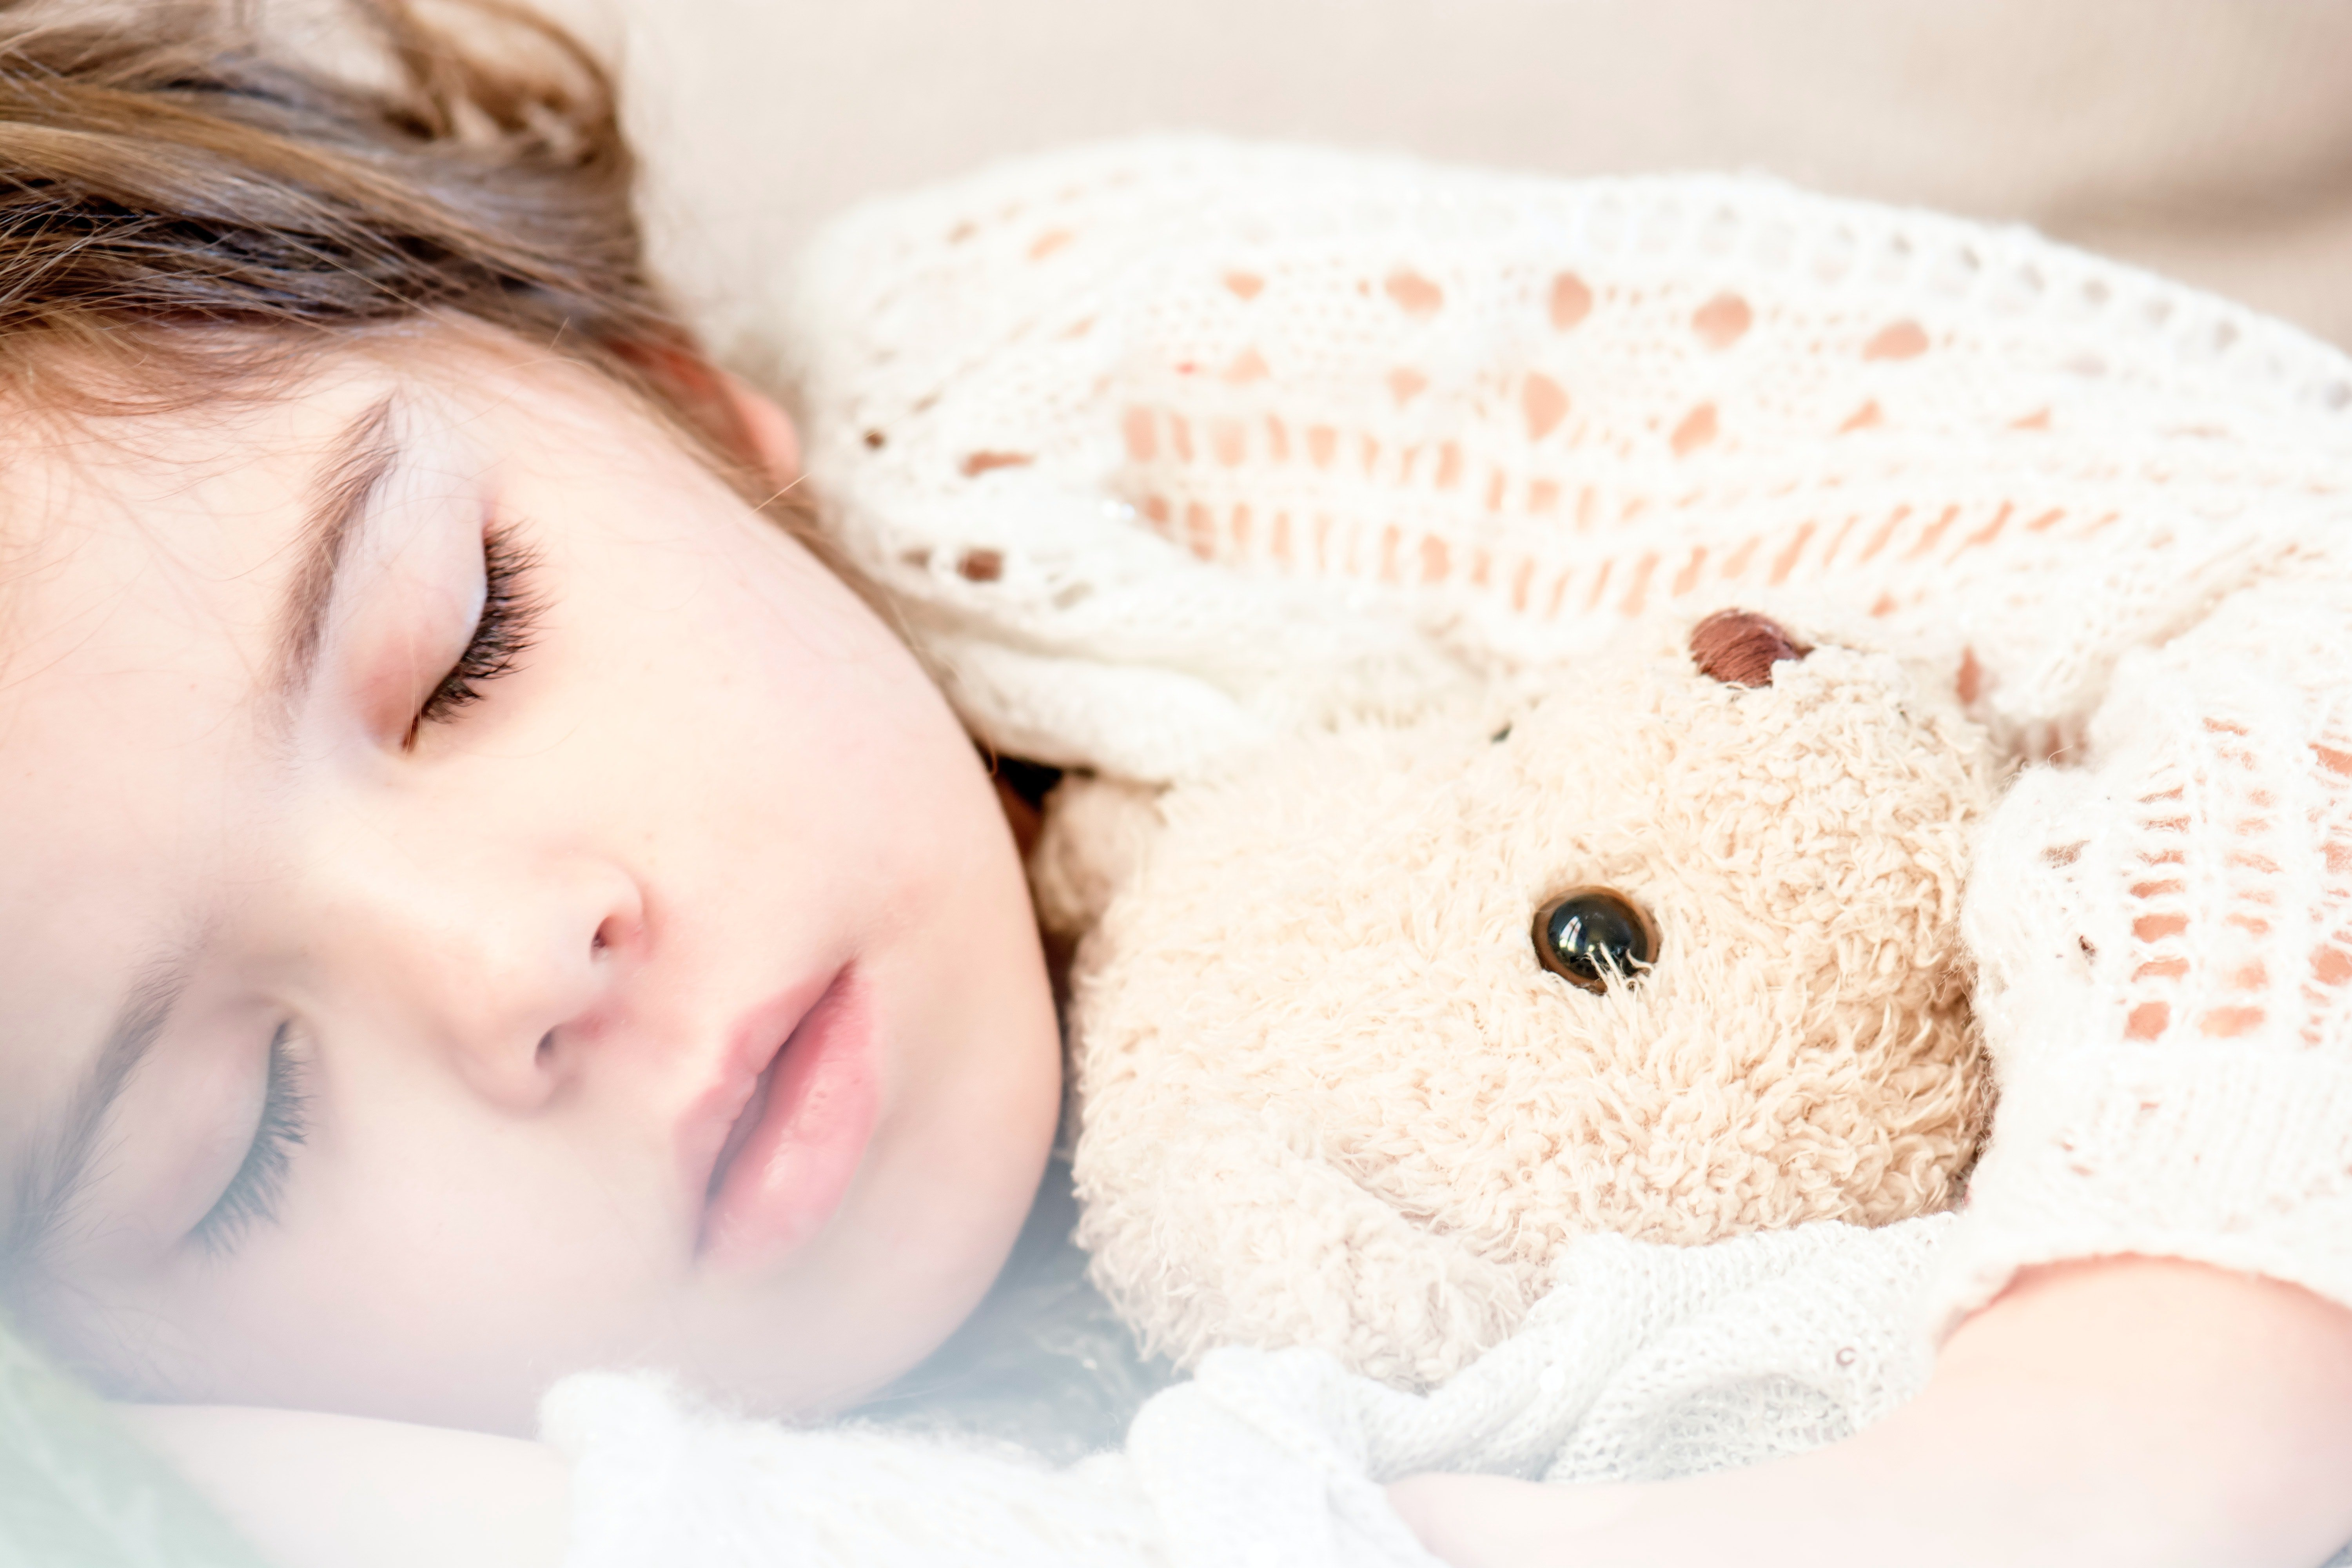 Claire slept really peacefully that night   Photo: Pexels